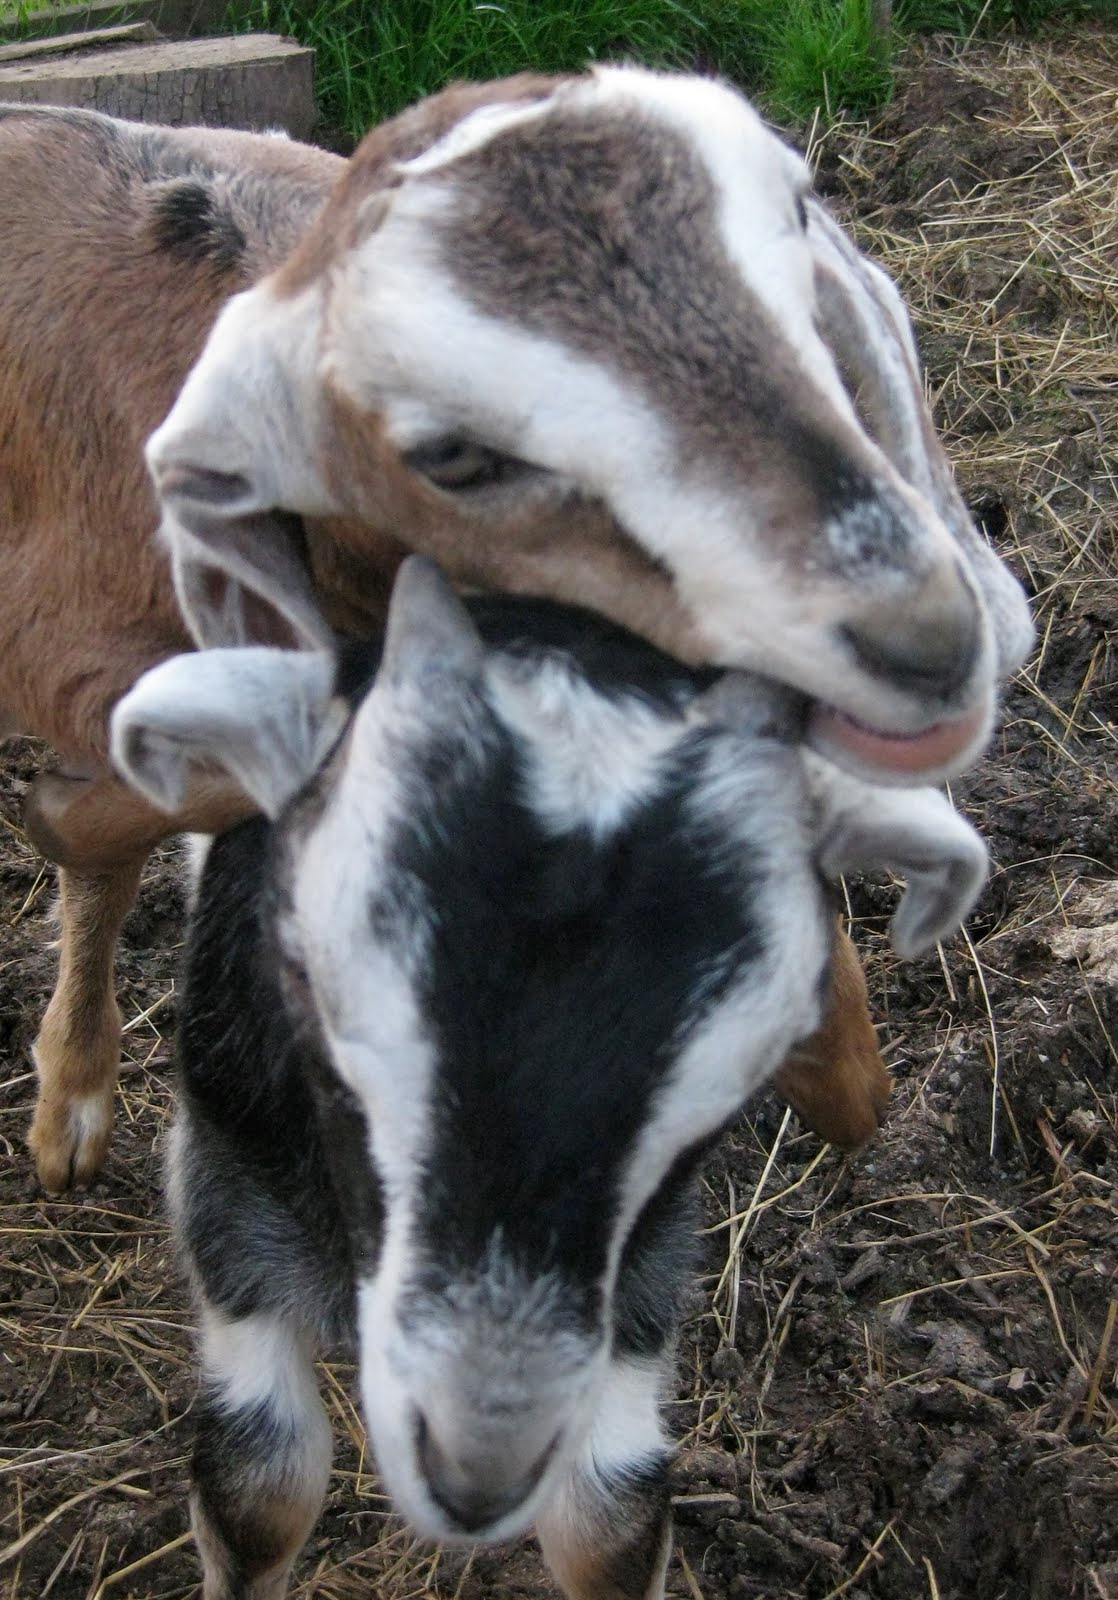 How To Raise Goats In Your Backyard 28 Images How To Raise Goats In Your Backyard 28 Images